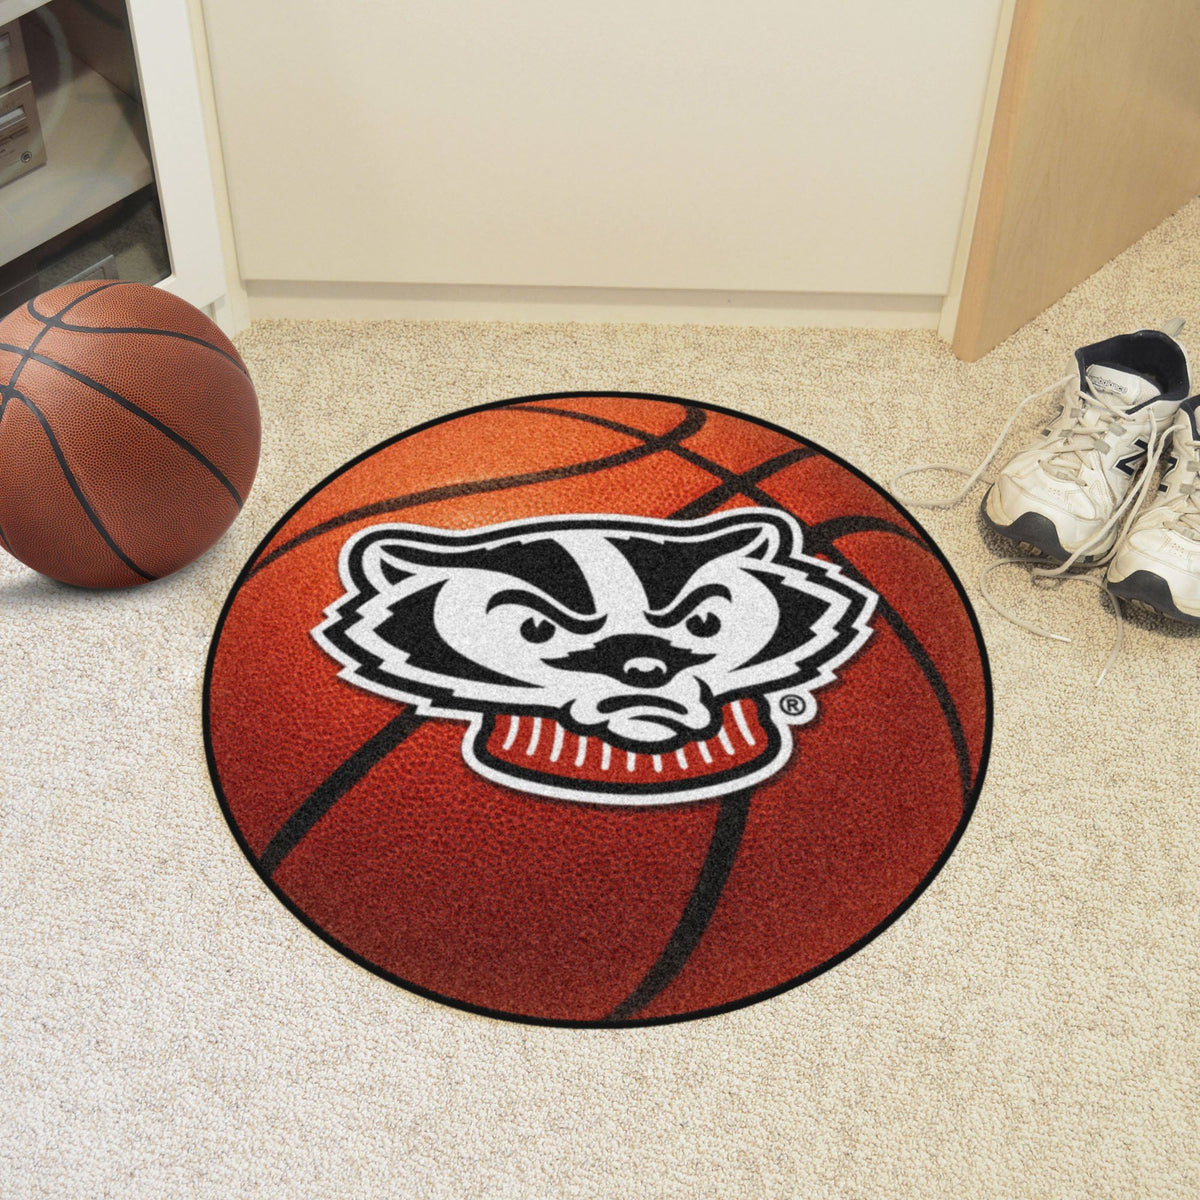 Collegiate - Basketball Mat: T - Z Collegiate Mats, Rectangular Mats, Basketball Mat, Collegiate, Home Fan Mats Wisconsin 2